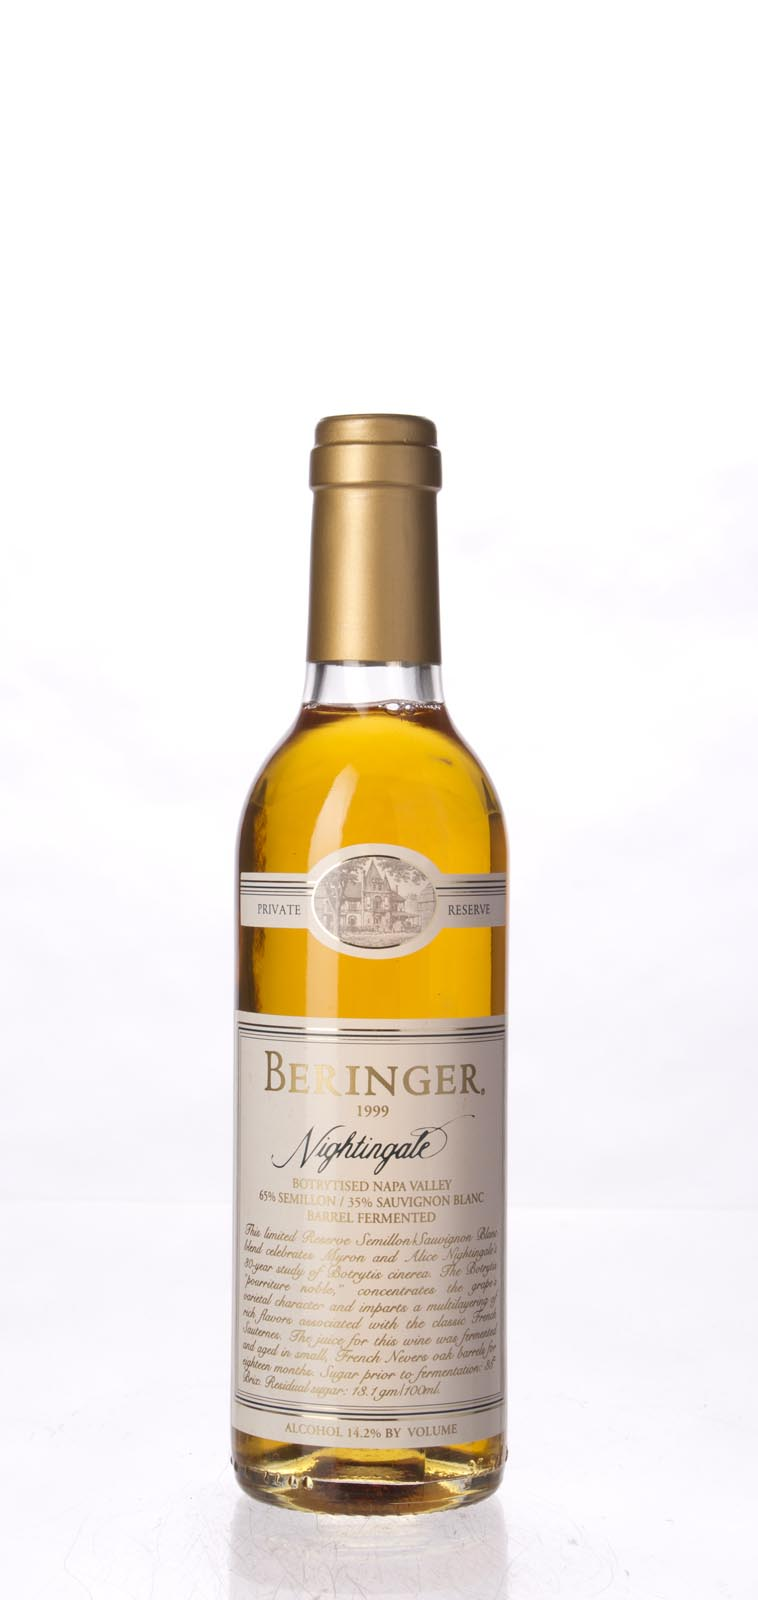 Beringer Nightingale Botrytised White Private Reserve 1999, 375ml (ST91) from The BPW - Merchants of rare and fine wines.